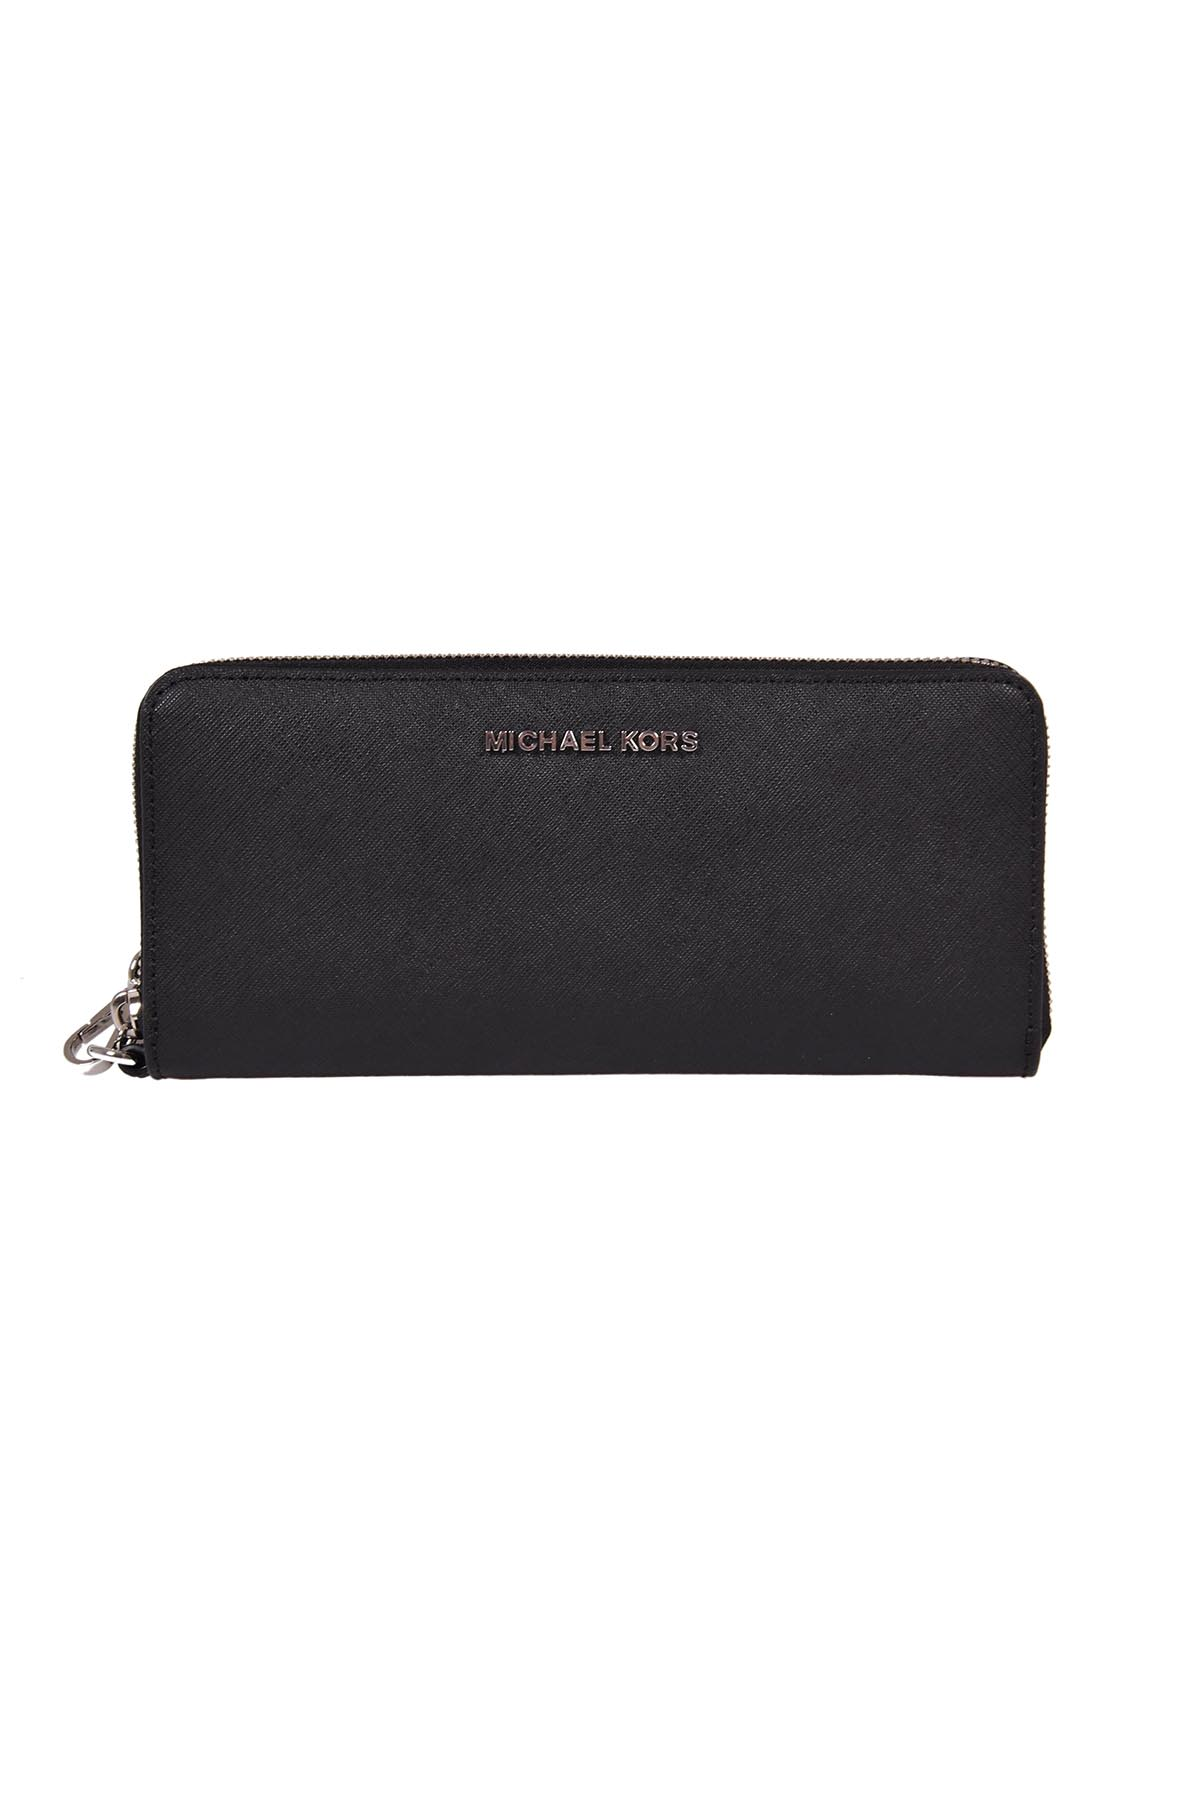 Michael Kors Money Pieces Travel Continental Wallet 9811151